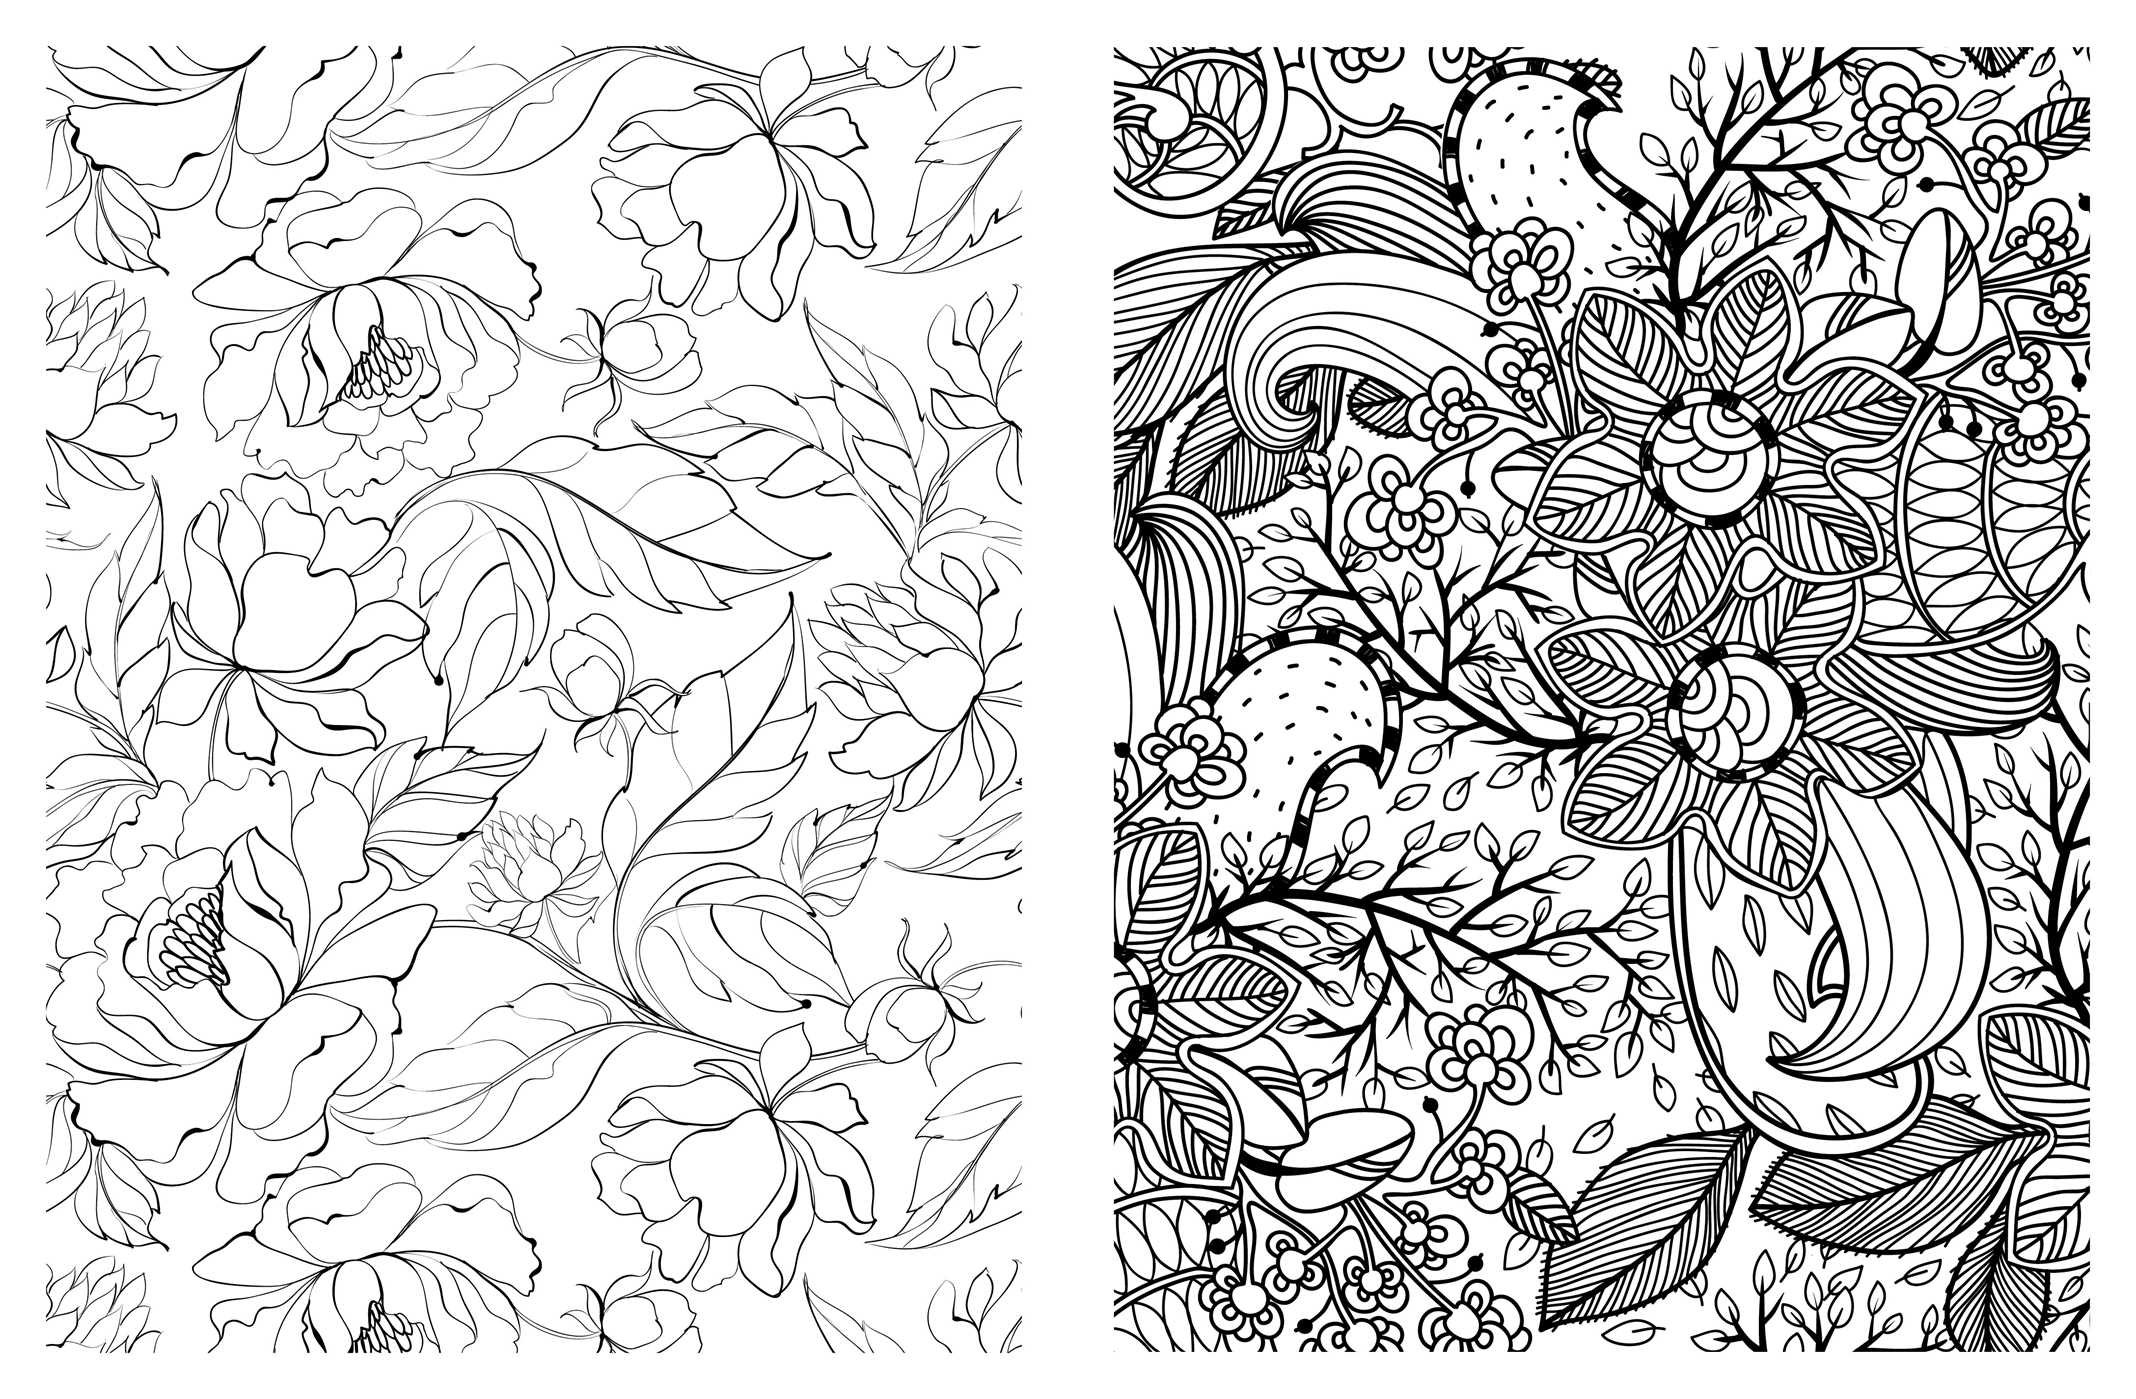 Coloring pages relaxing - Amazon Com Posh Adult Coloring Book Pretty Designs For Fun Relaxation Posh Coloring Books 9781449458751 Andrews Mcmeel Publishing Books